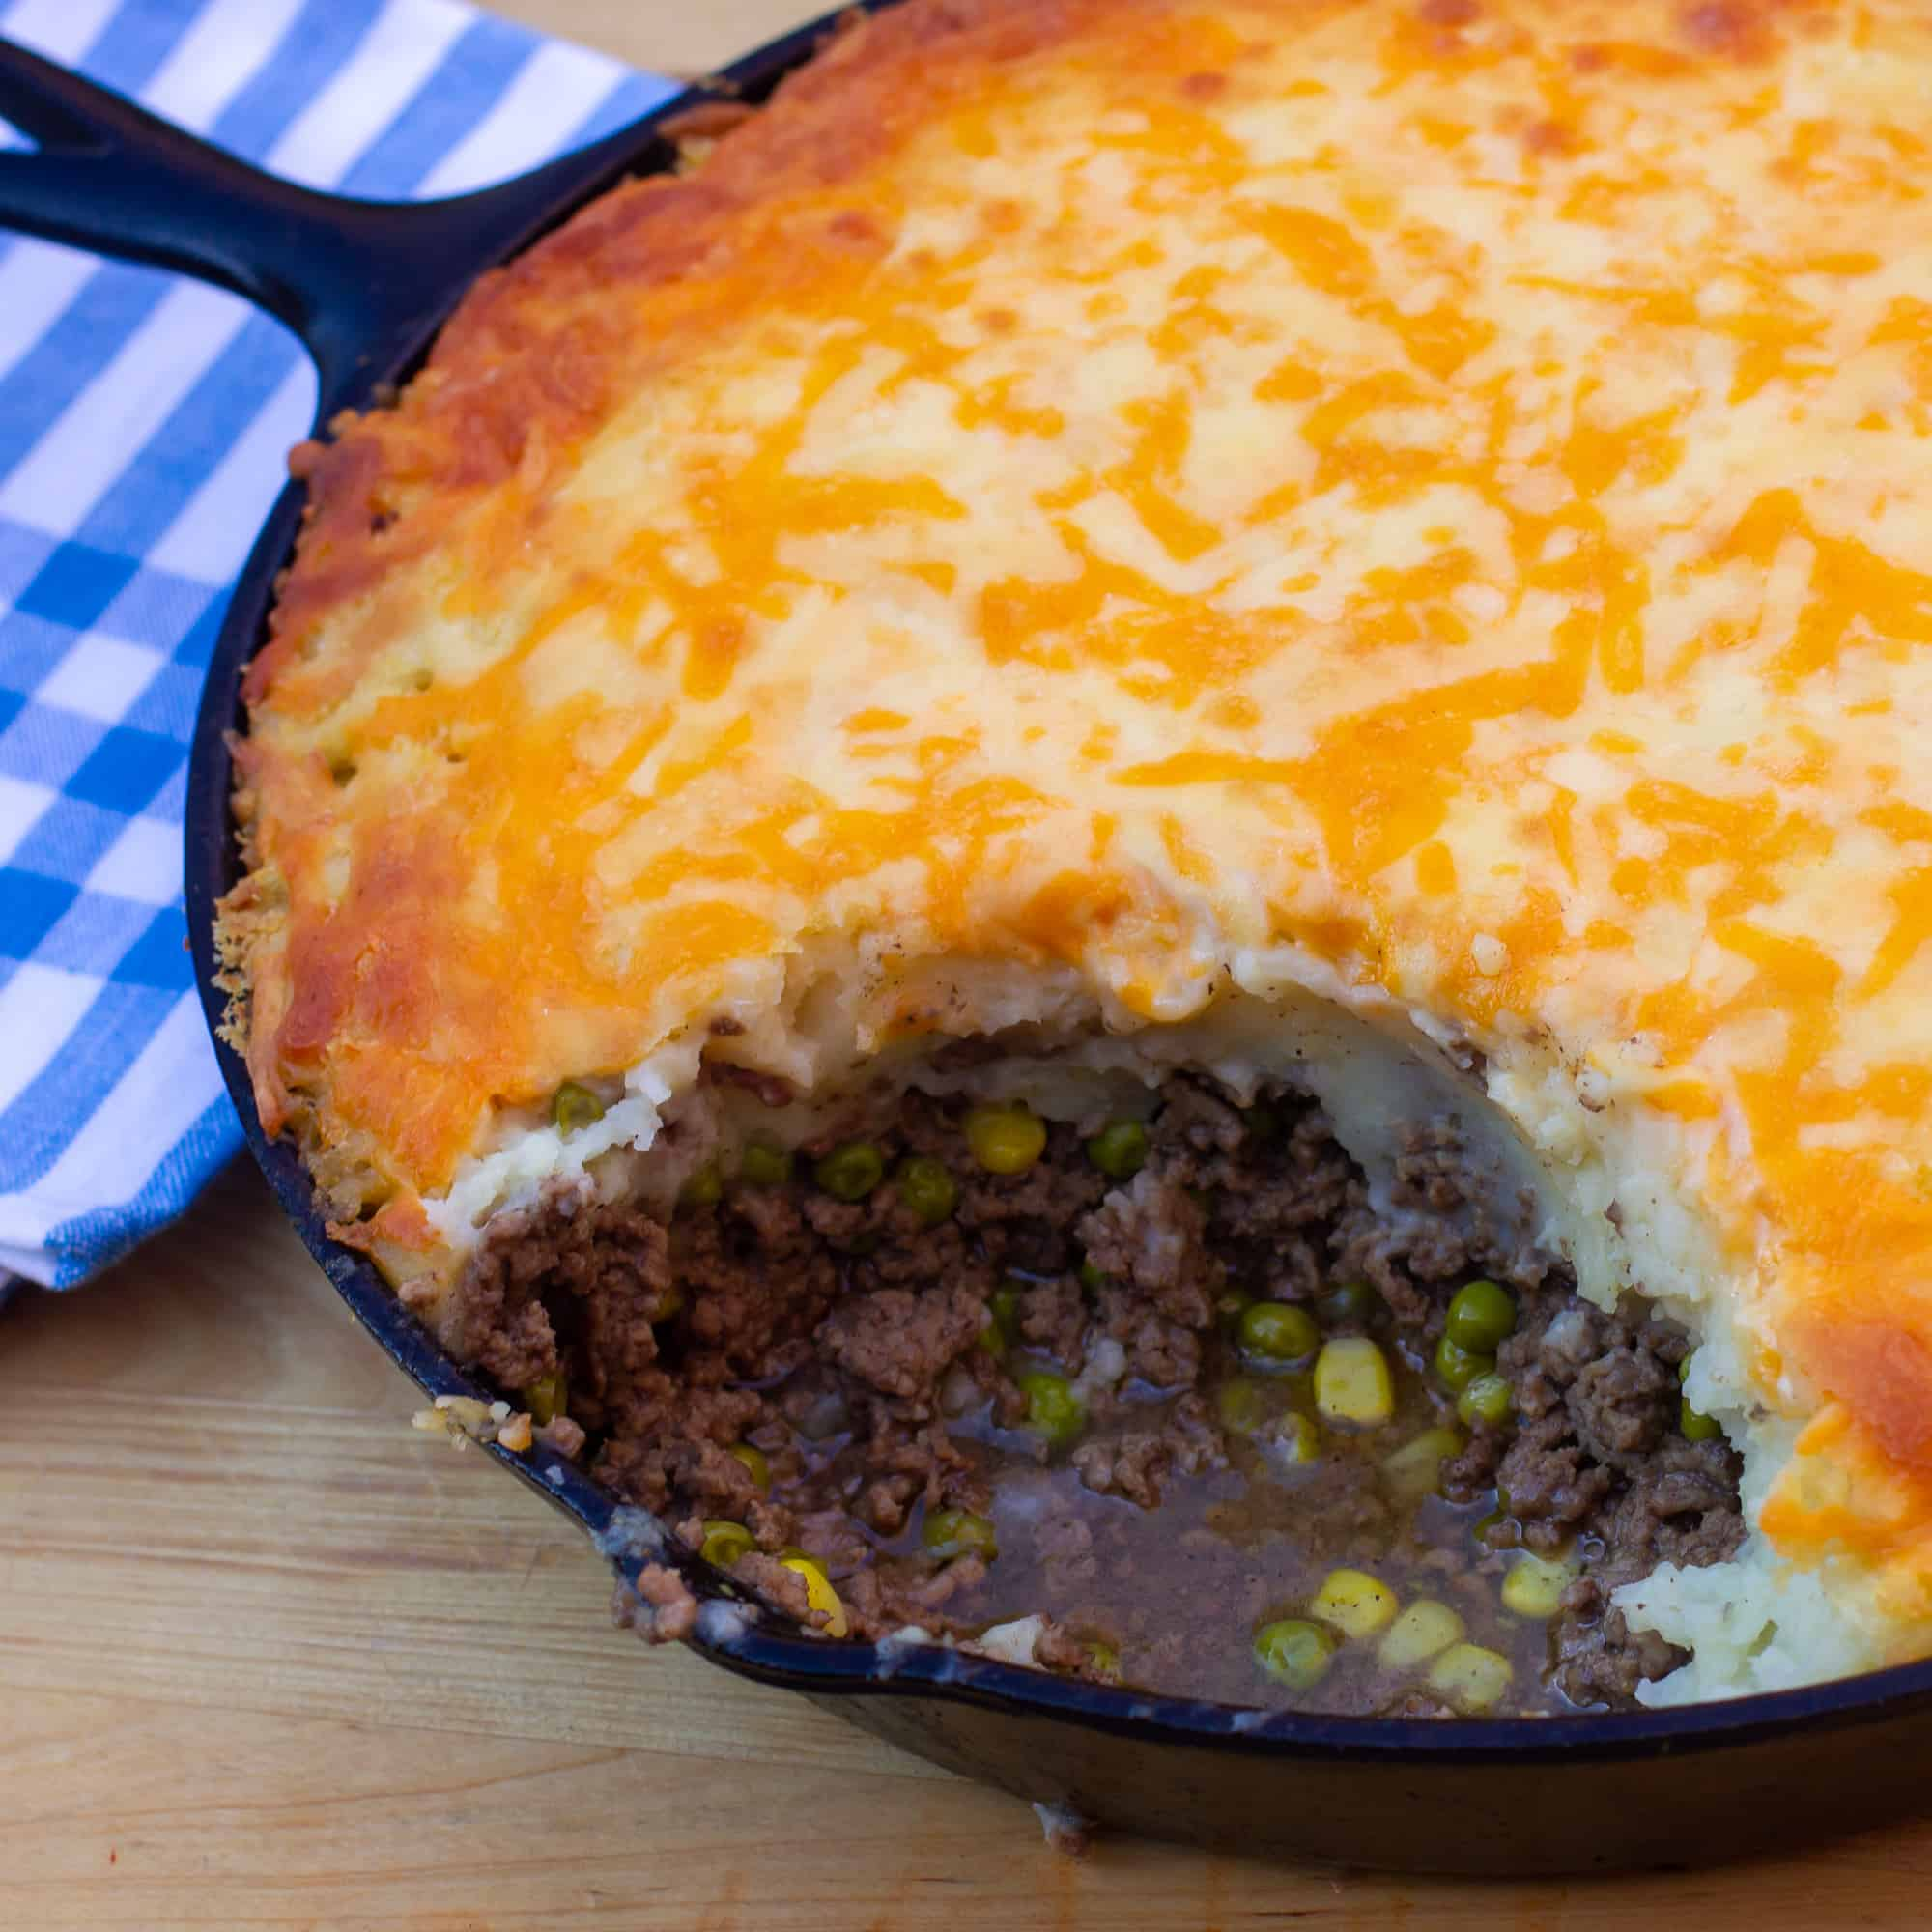 How to make a shepherd's pie in a cast iron skillet